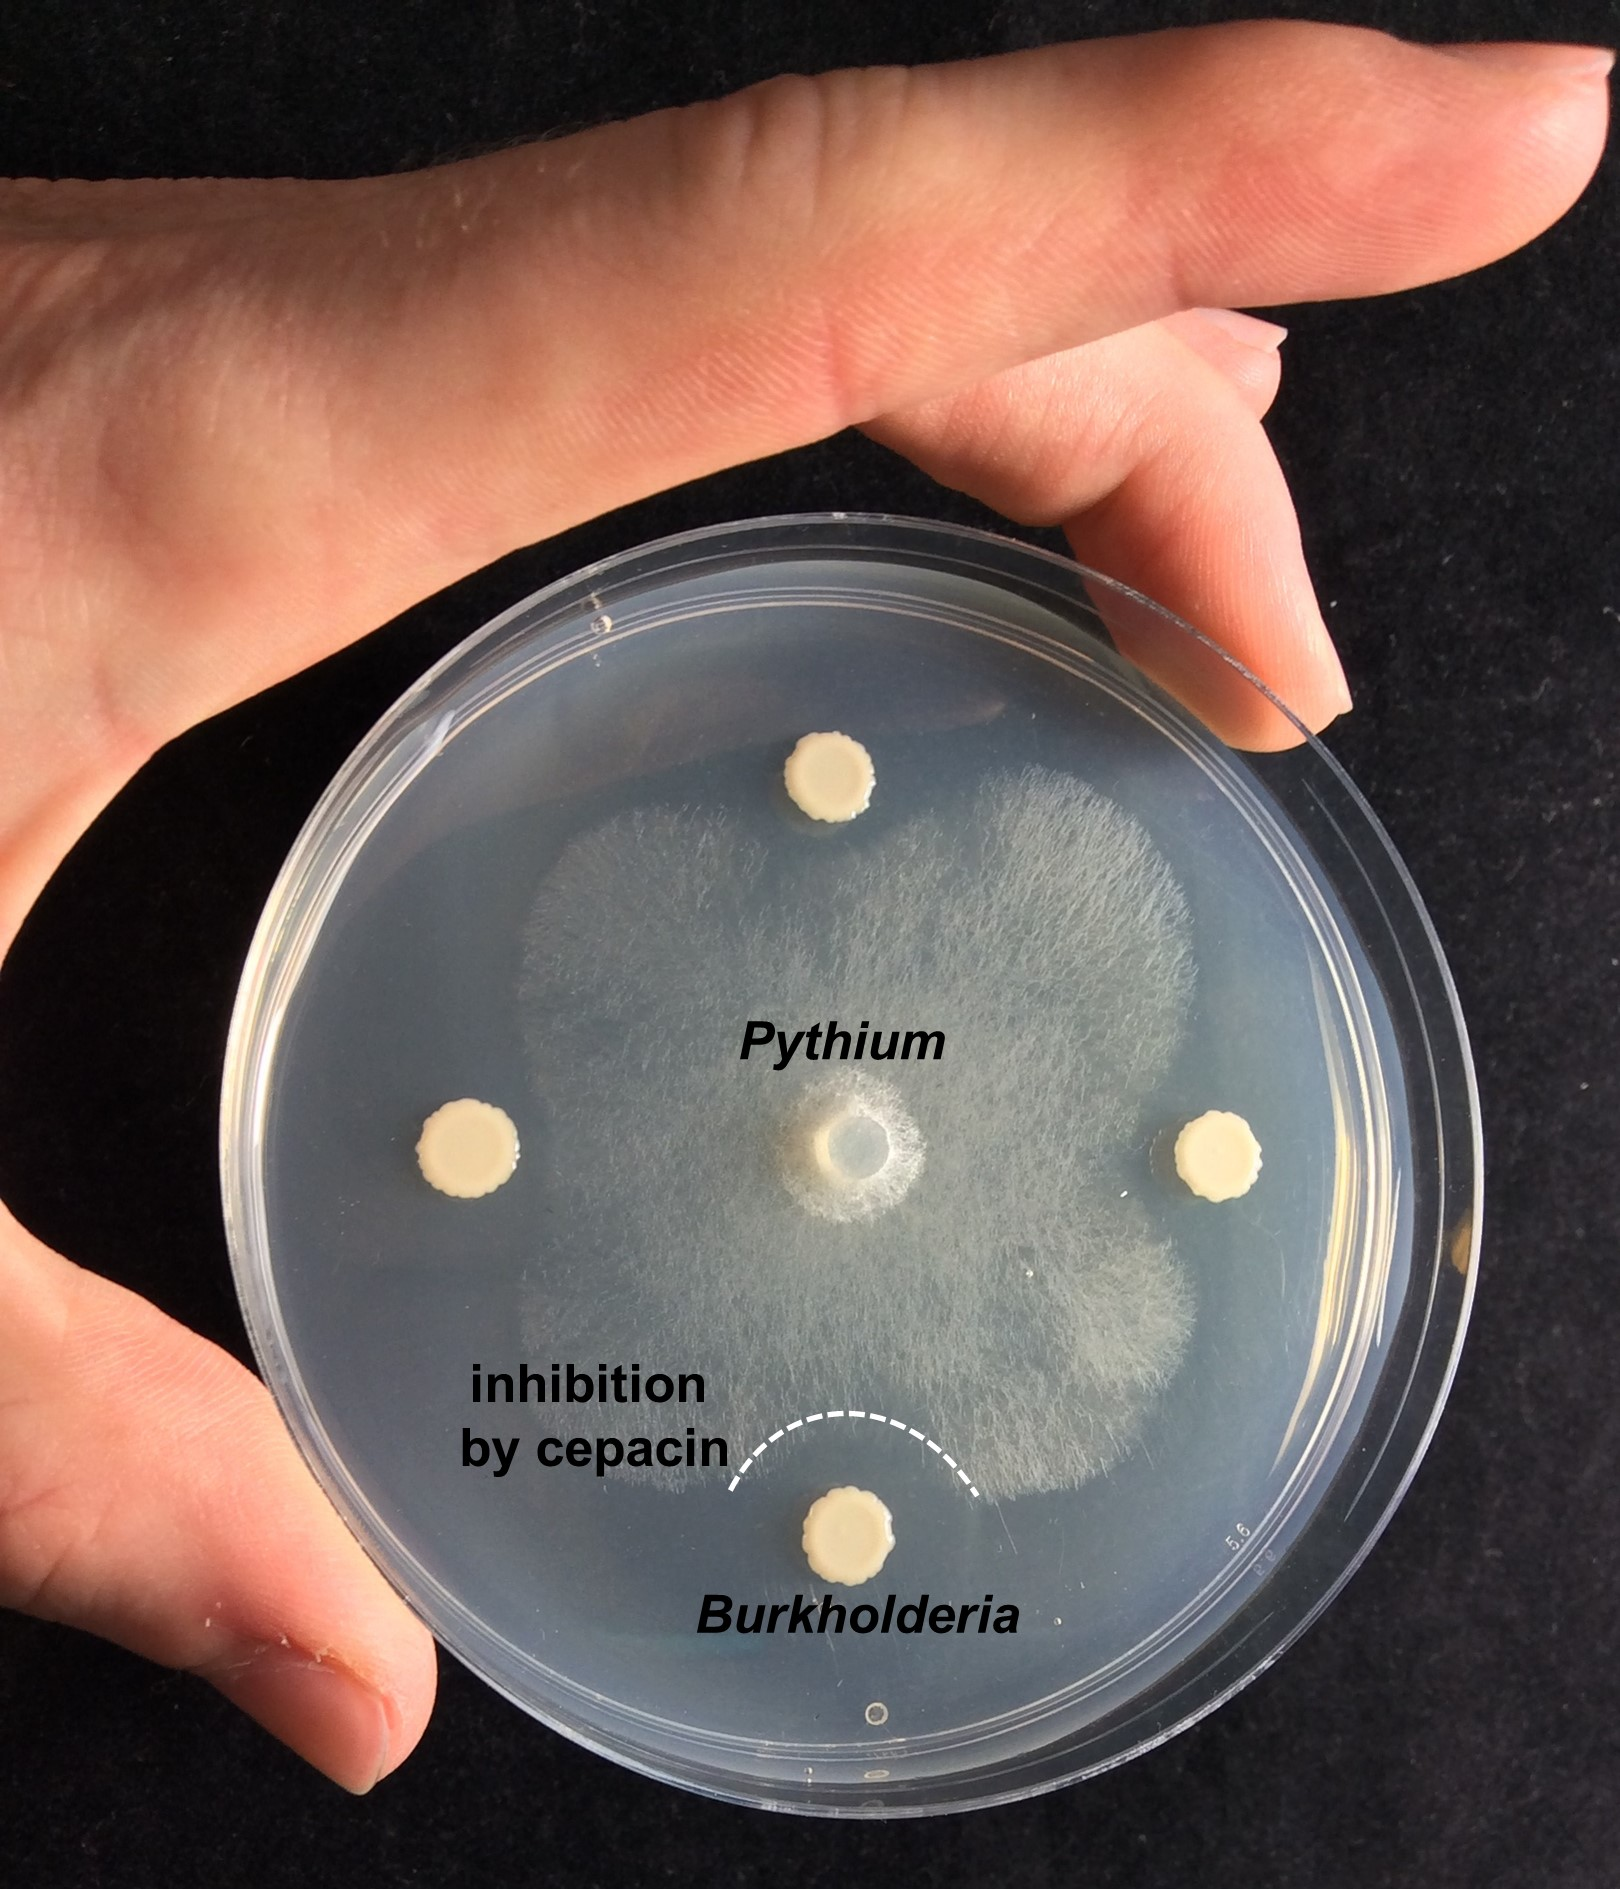 Burkholderia ambifaria inhibiting the plant pathogen Pythium